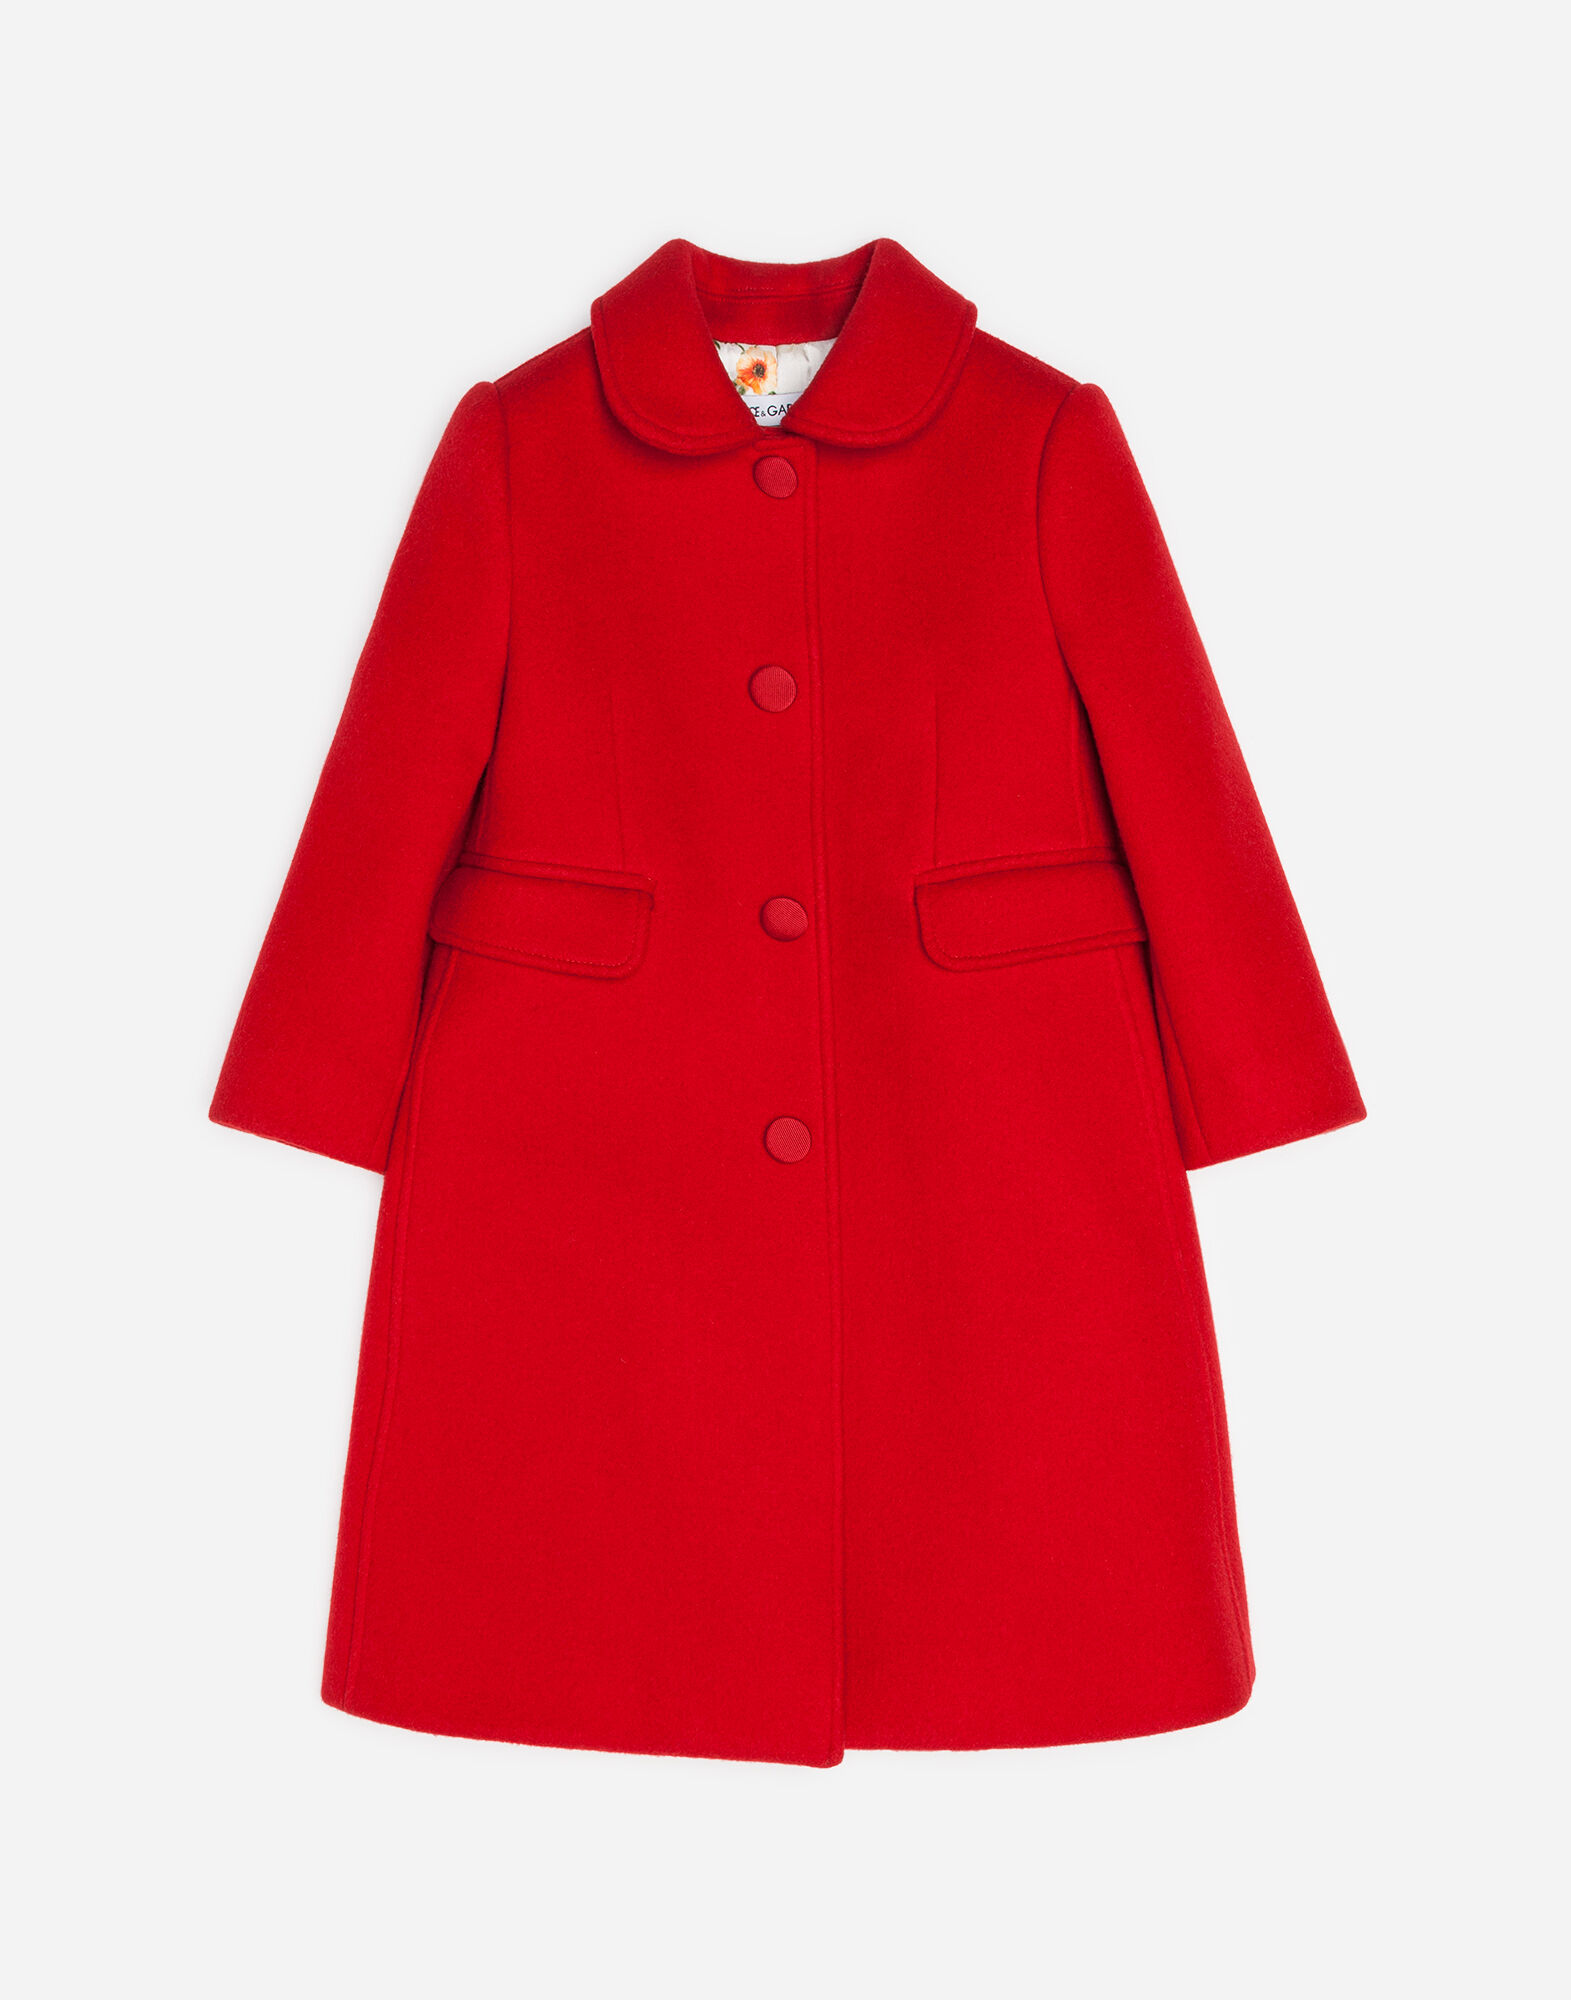 Dolce&Gabbana COAT IN WOOL AND CASHMERE BLEND